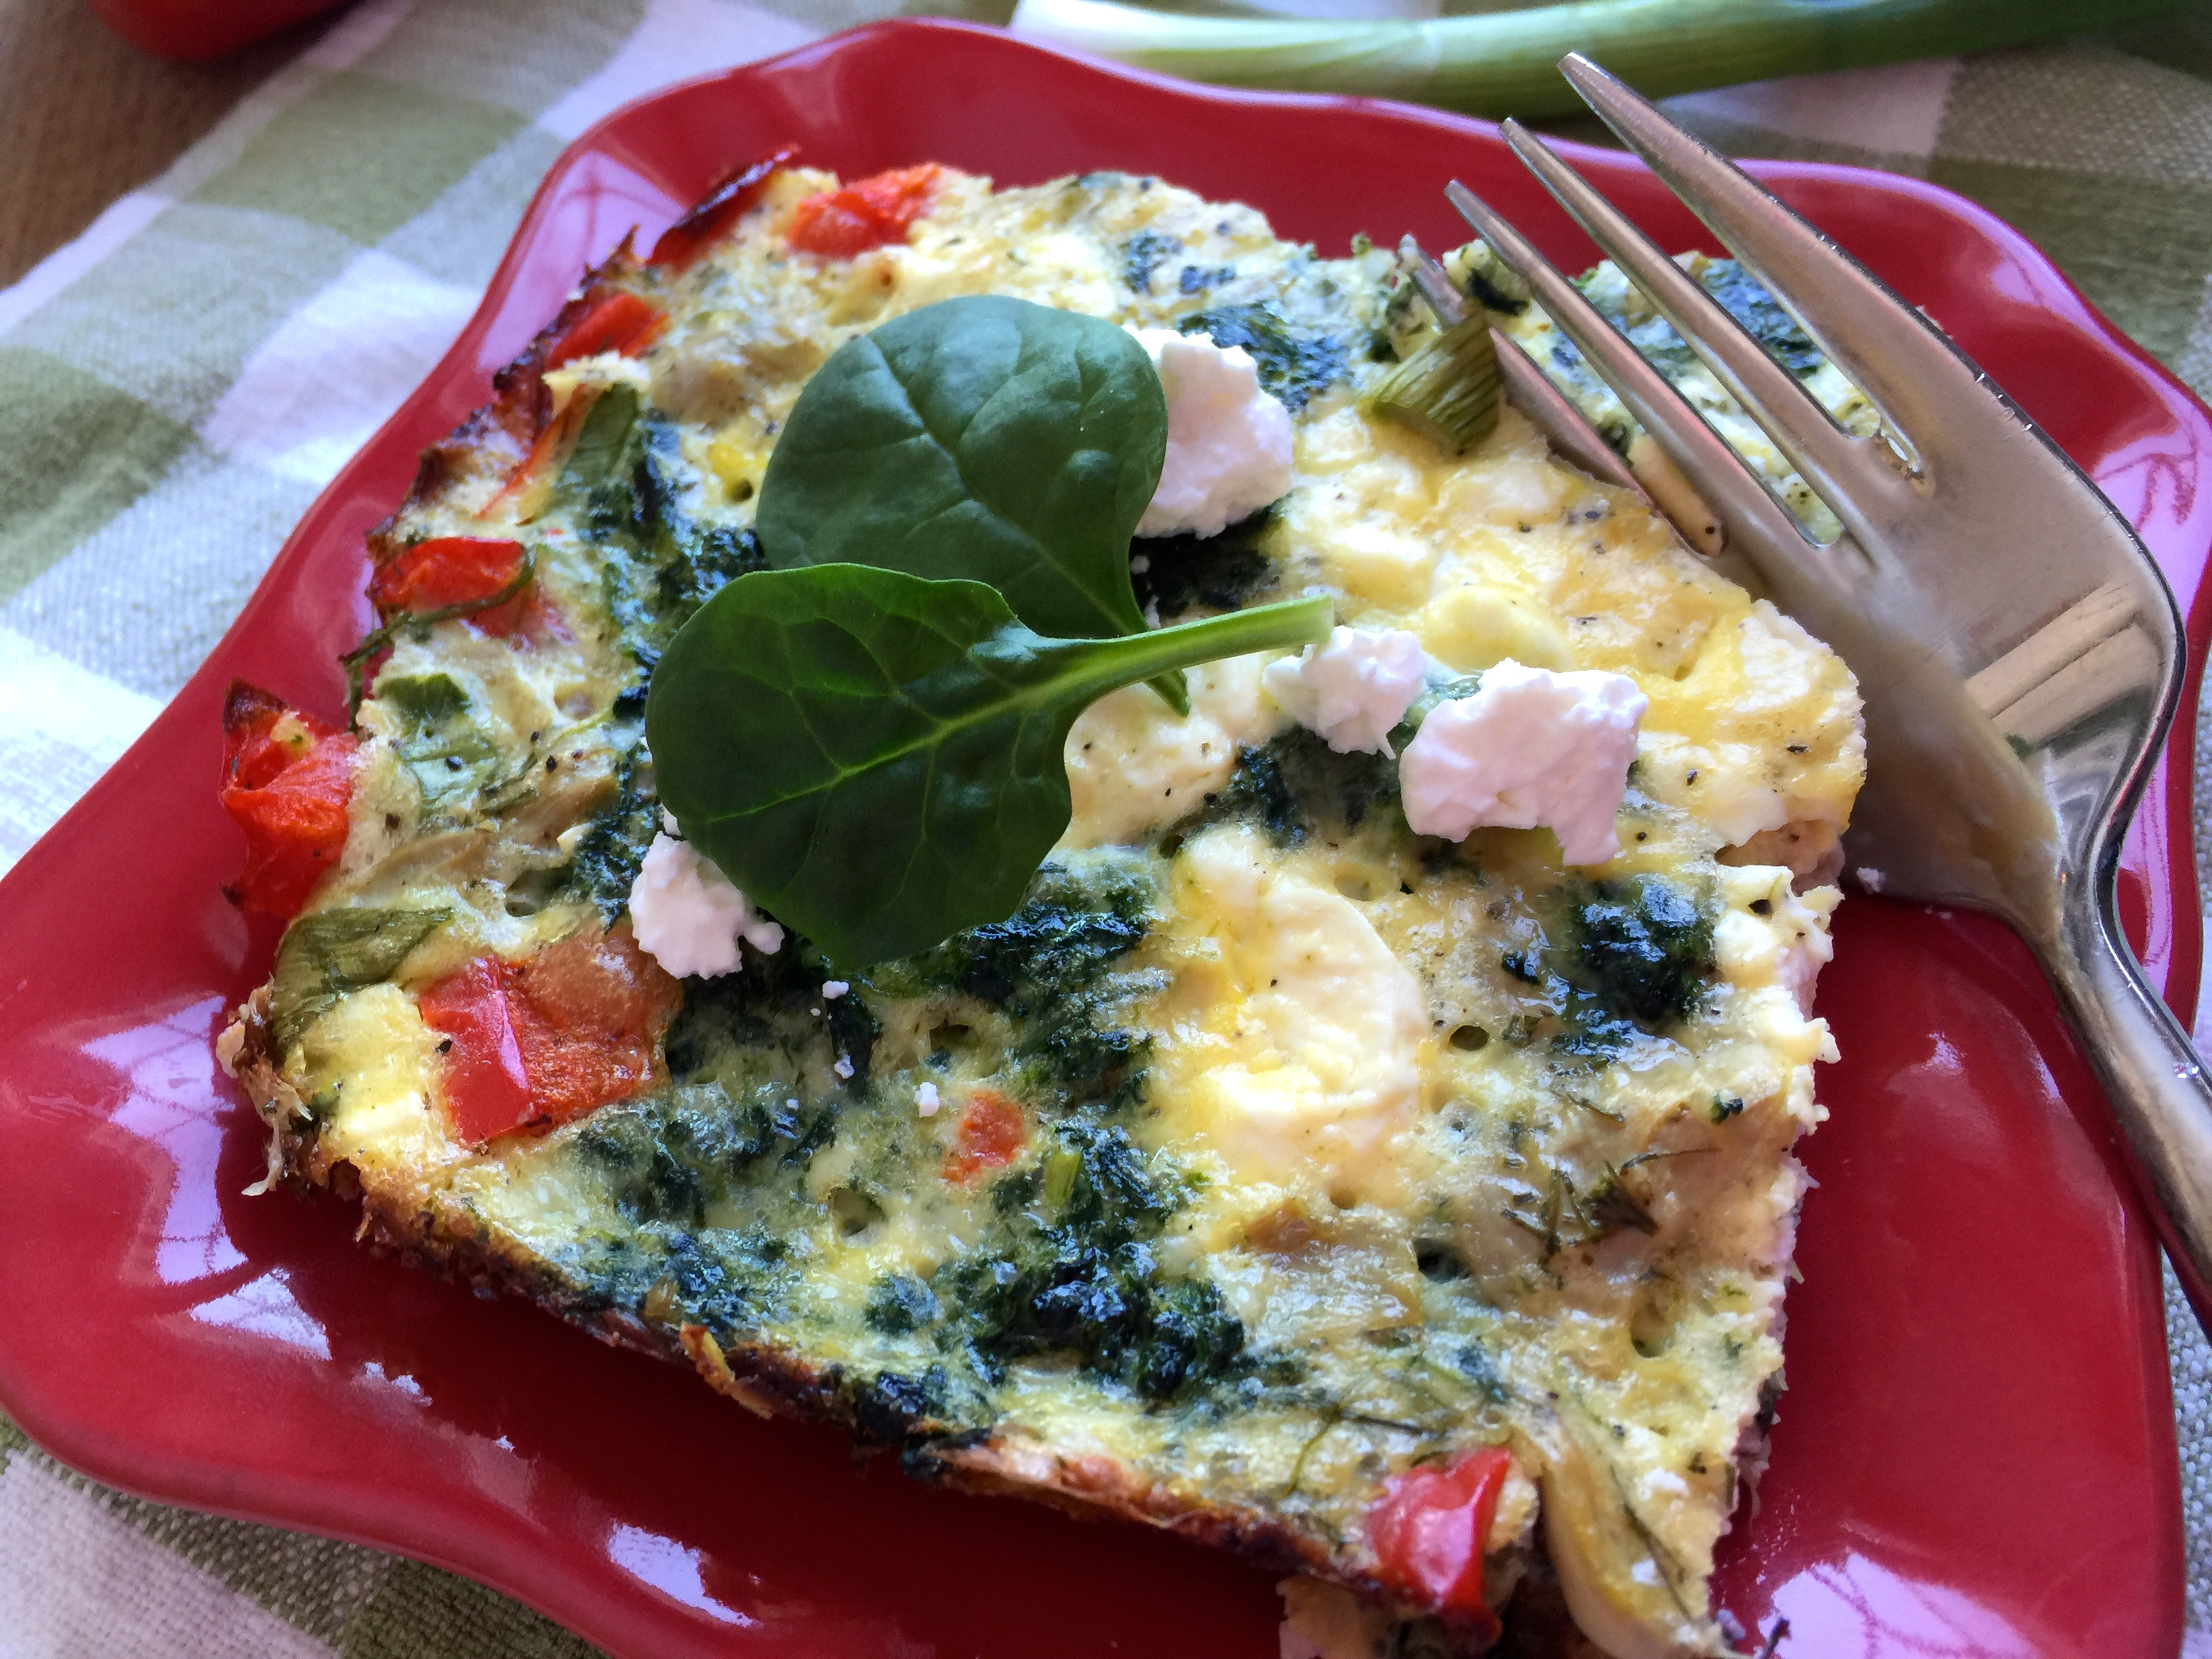 Healthy Meal #7: Pre-made Egg, Spinach, Artichoke, and Feta Squares – Breakfast on the Run!